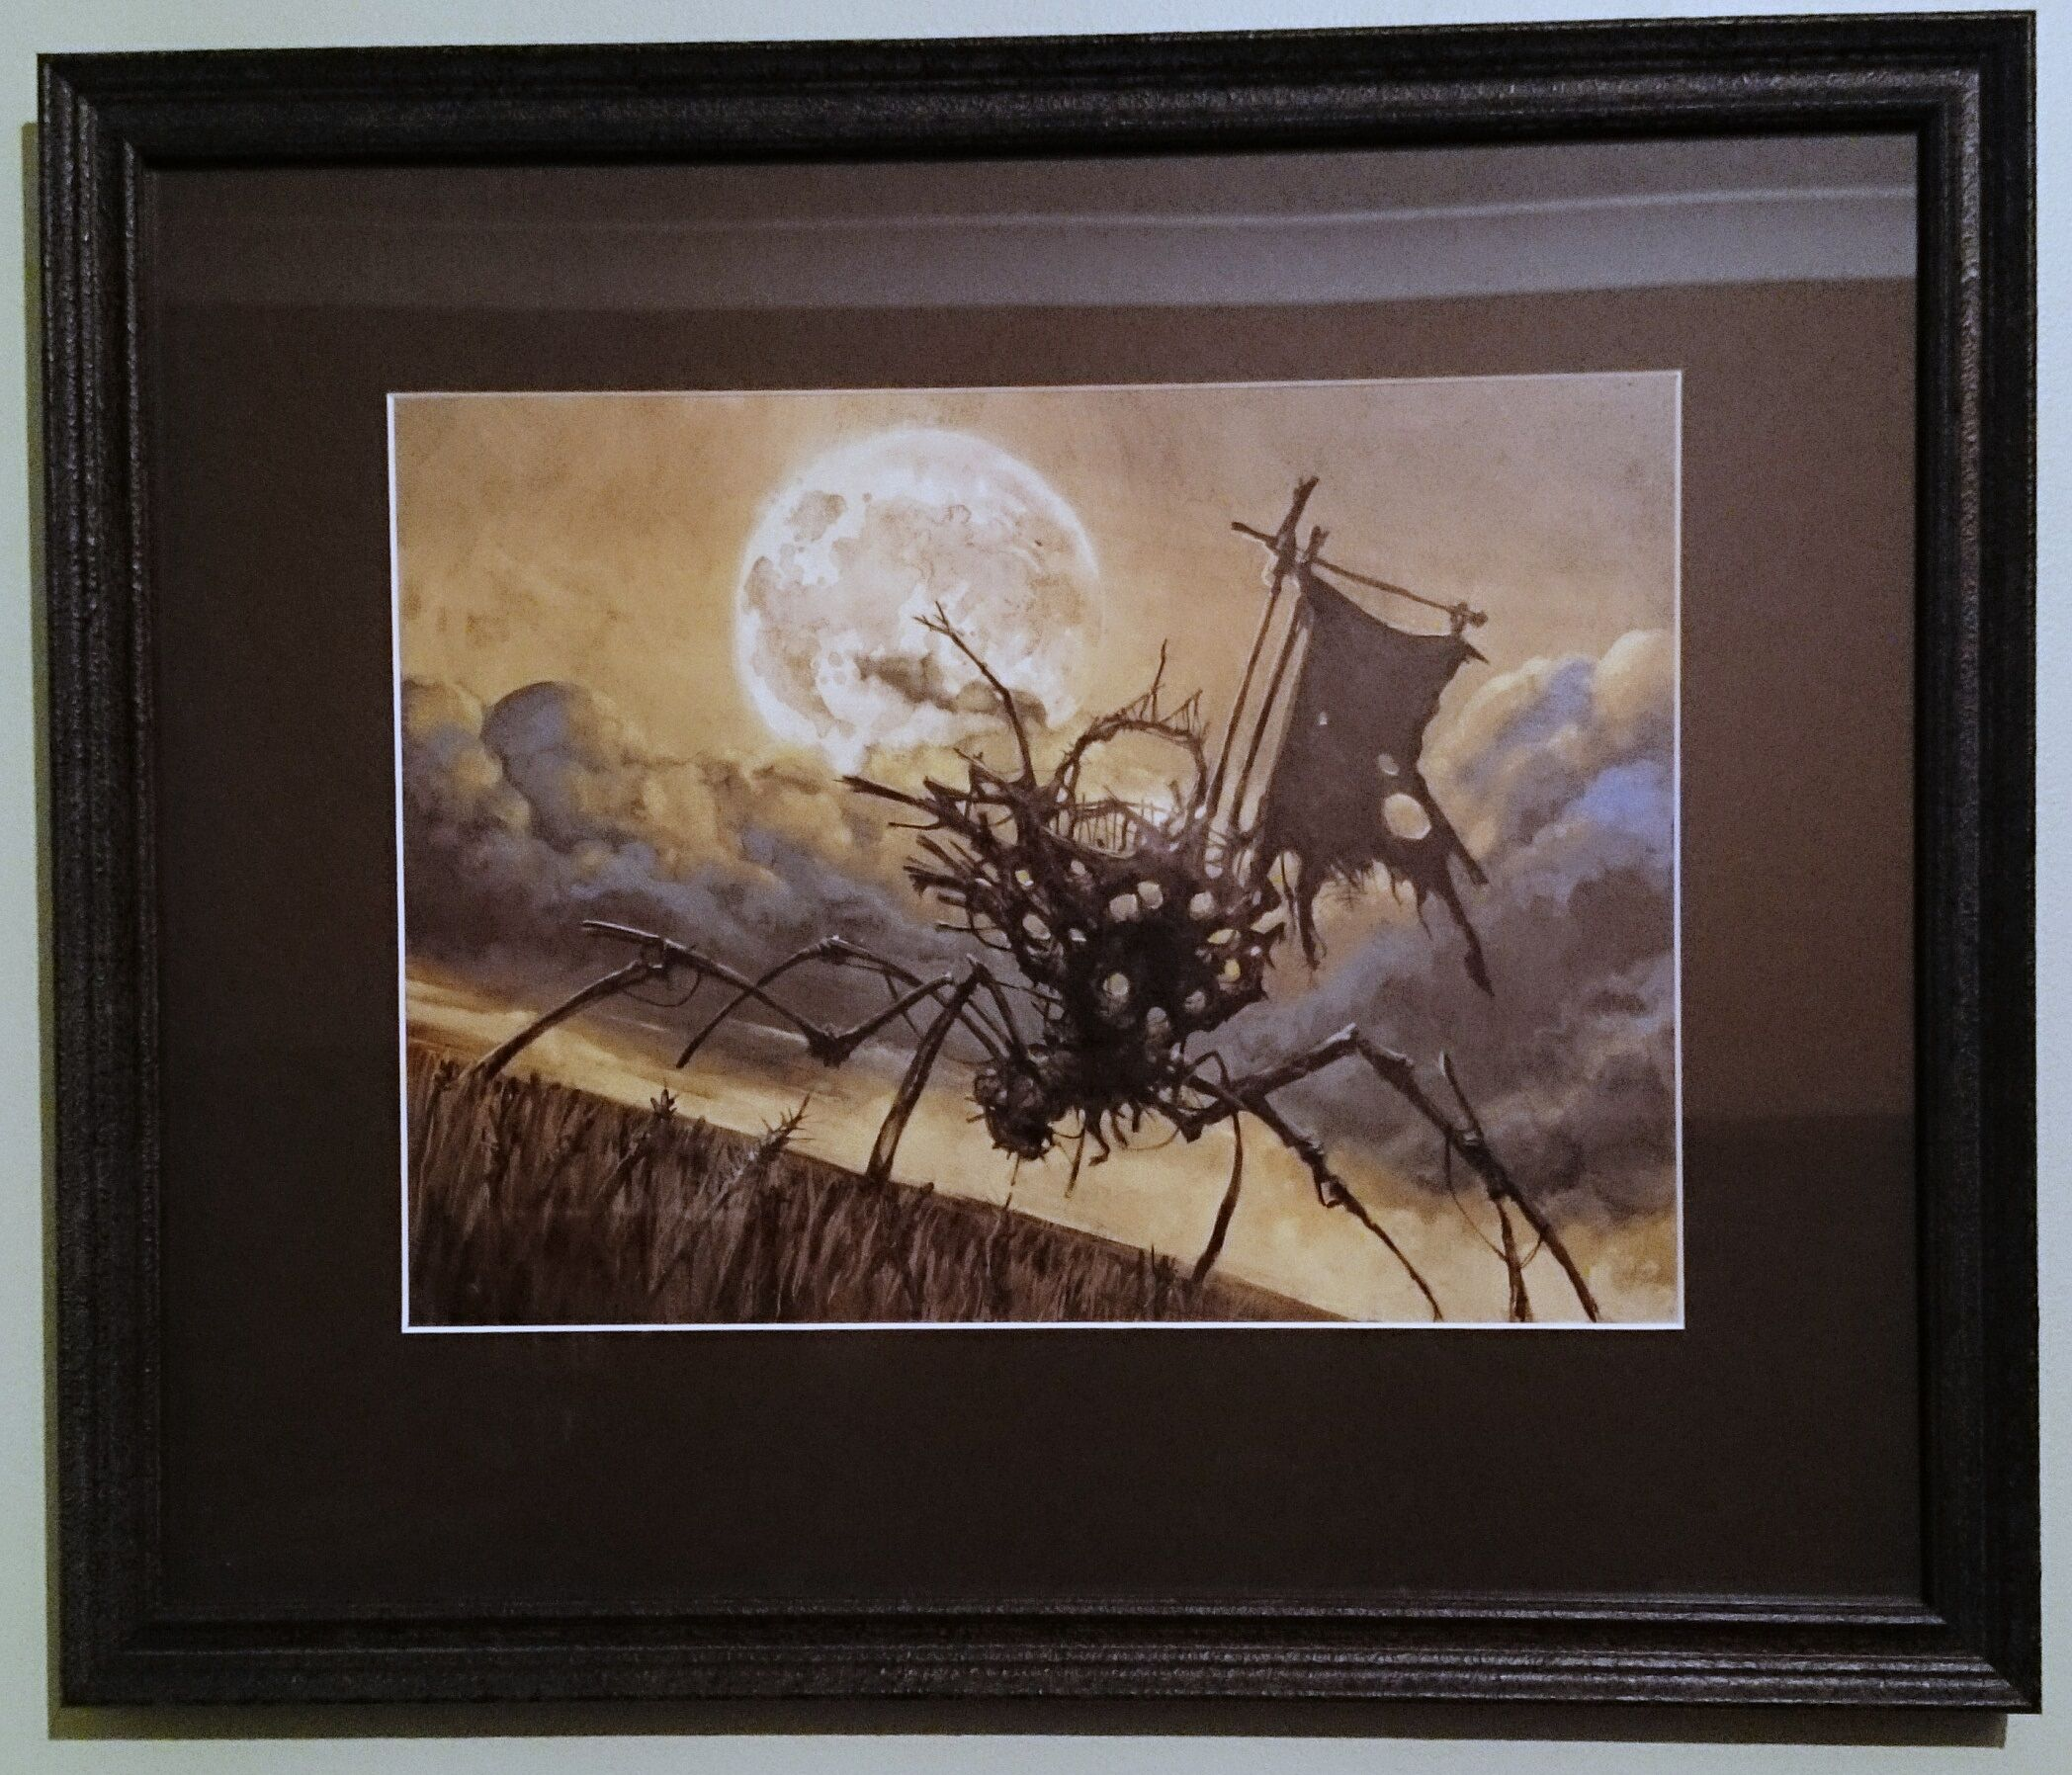 Magic Art of the Day - Wicker Warcrawler by Carl Critchlow - Check out the owner's gallery: